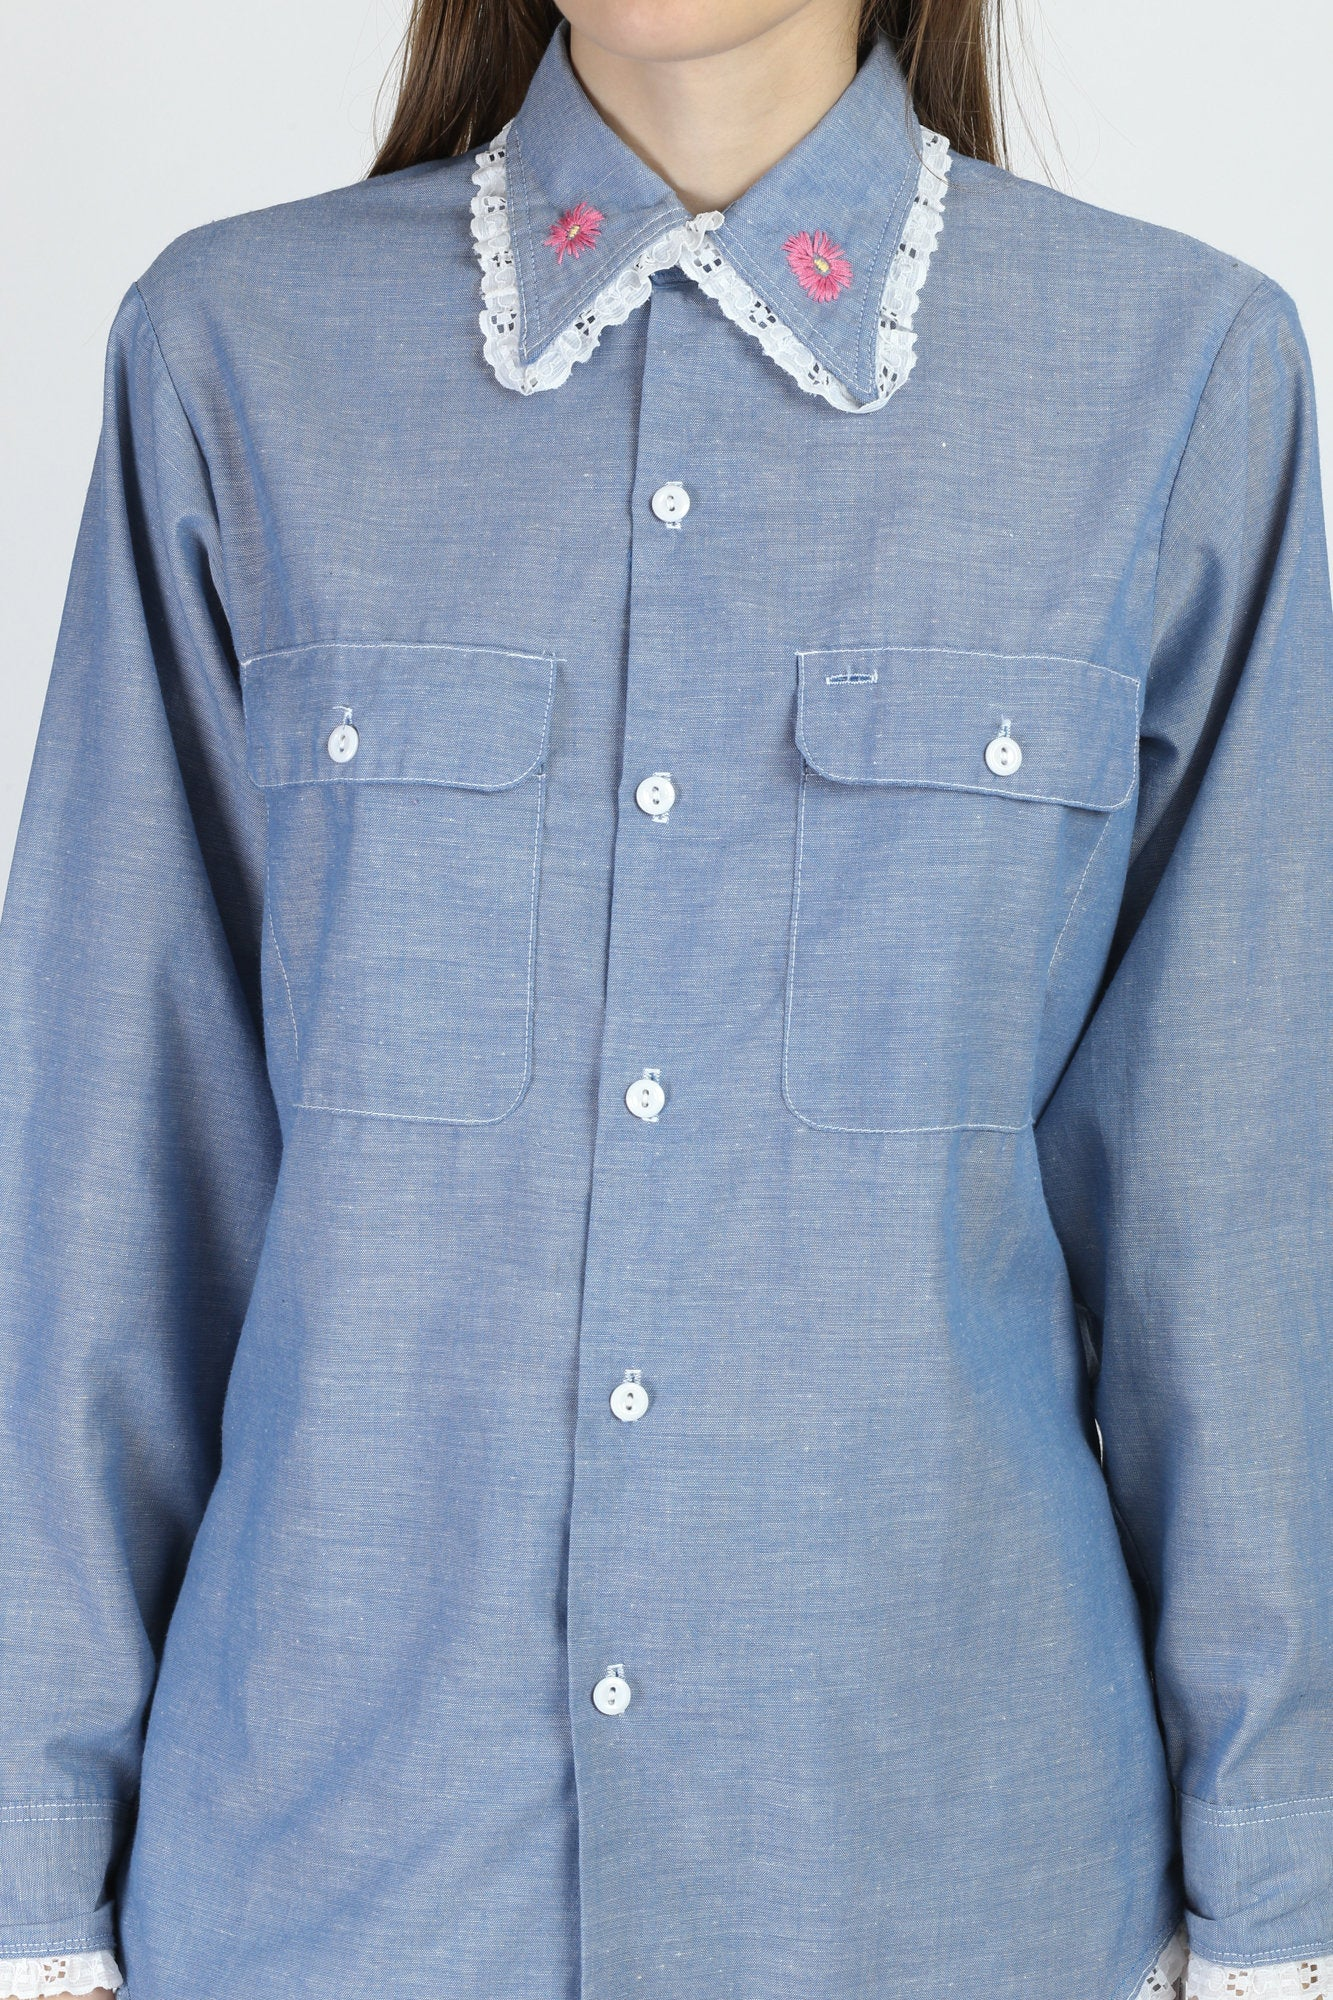 70s Chambray Embroidered Shirt - Large